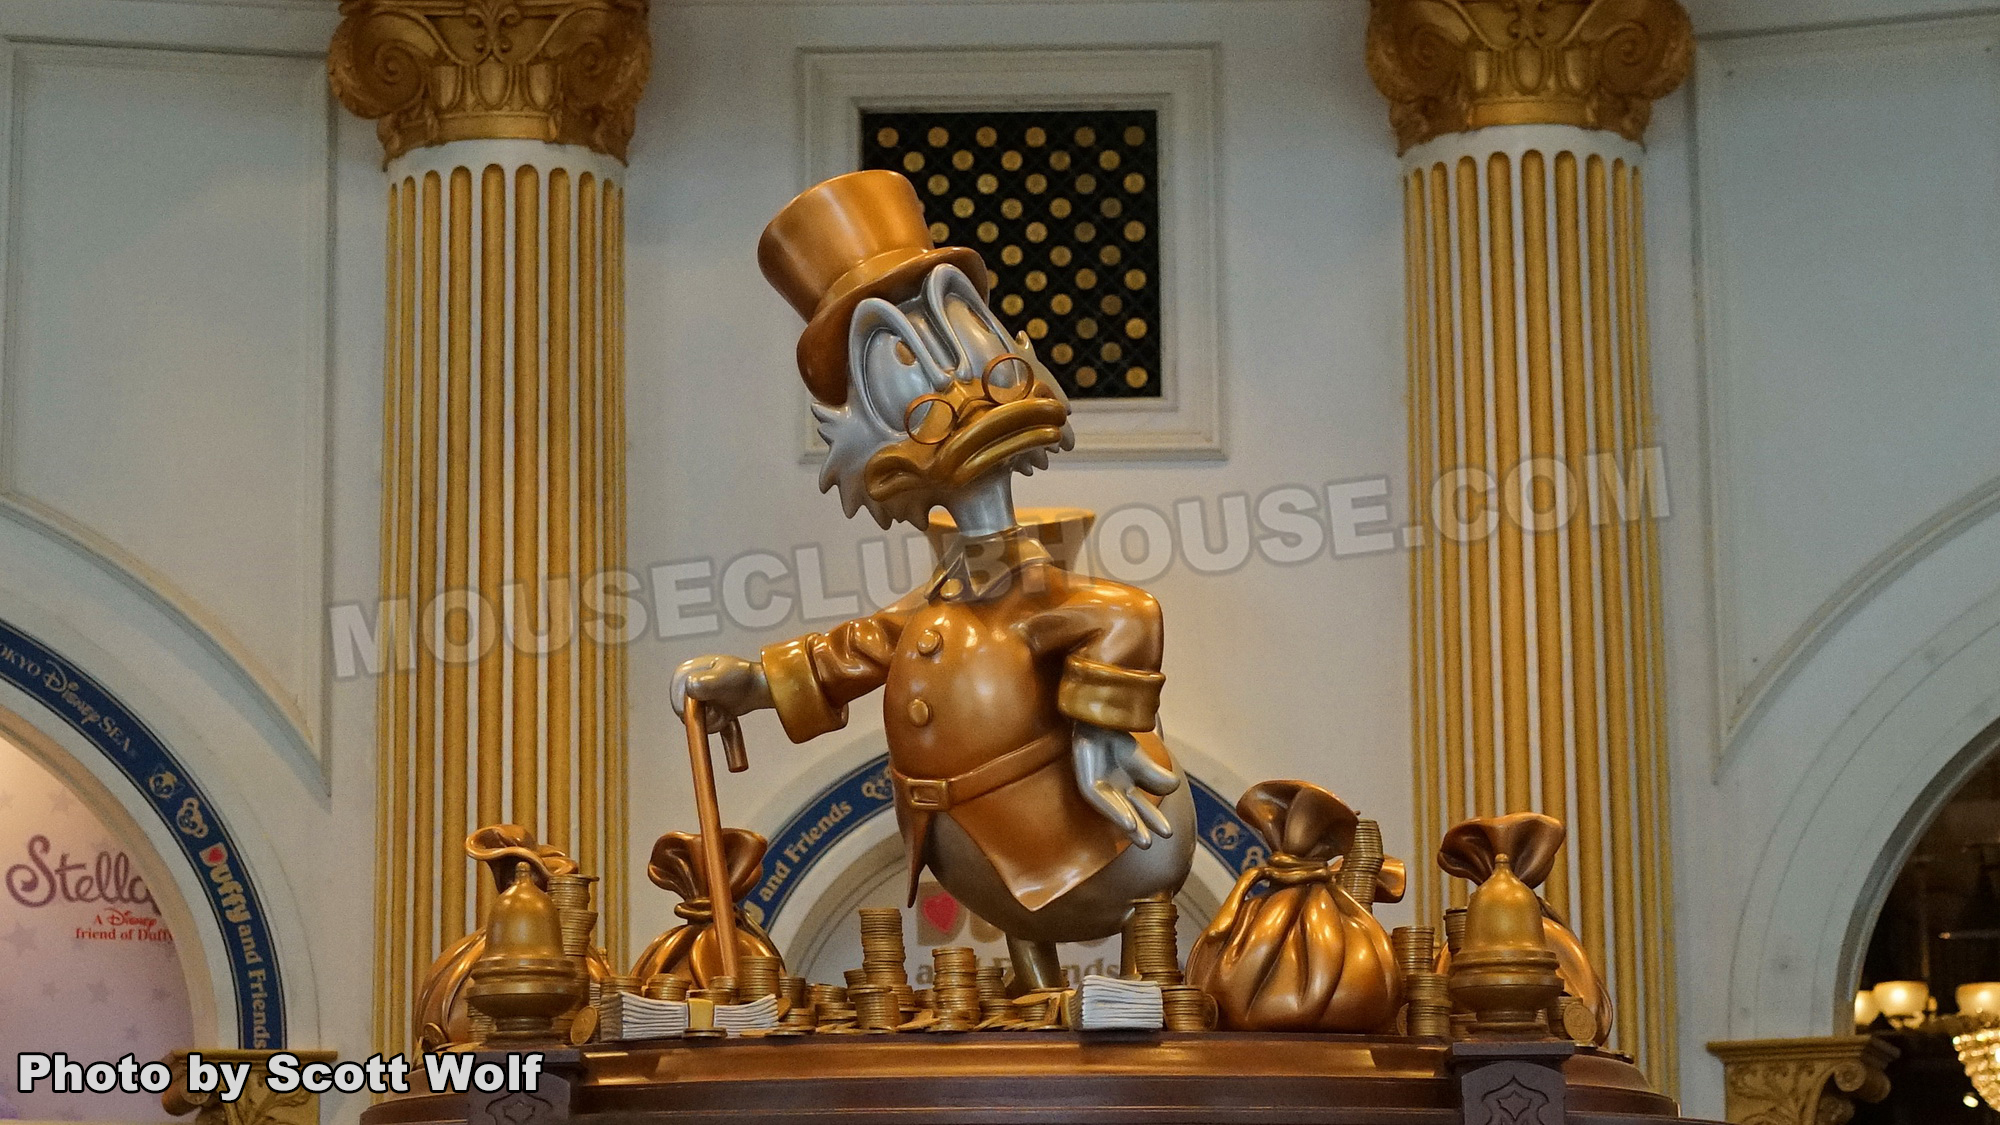 Scrooge McDuck is showcased in the center of the store